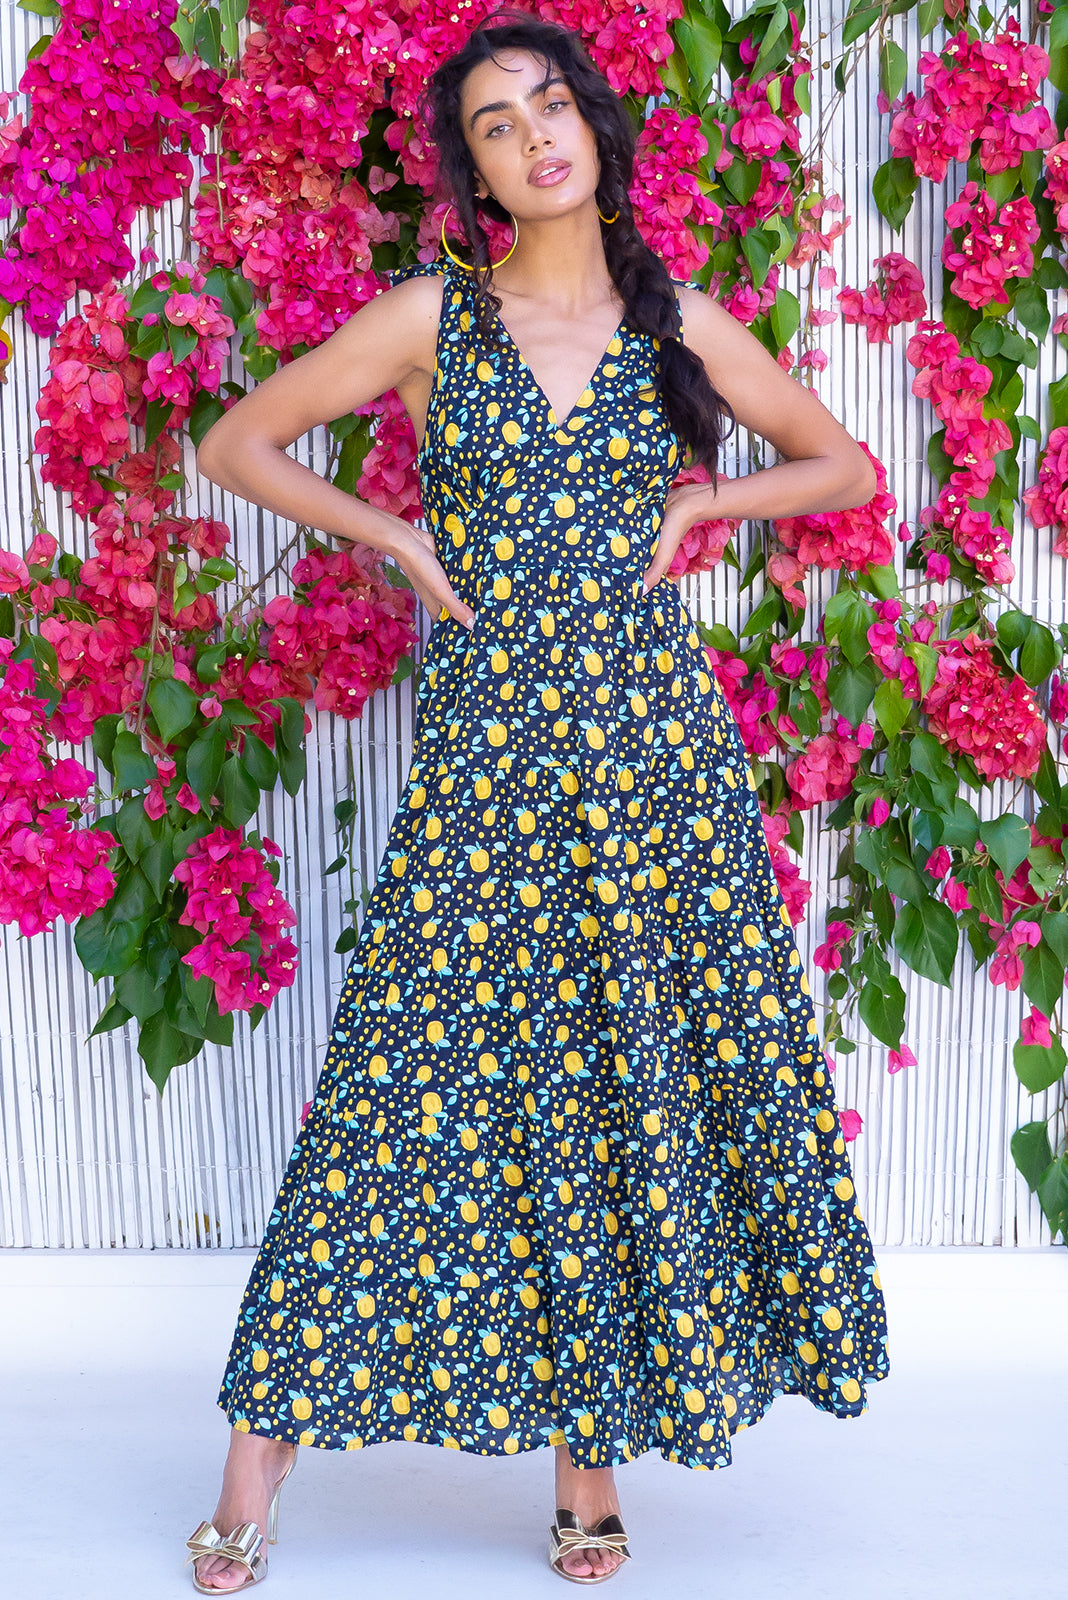 The Isla Apple Noir Maxi Dress features adjustable shoulder ties, shirred elasticated back waist, flattering front basque waist, side pockets, tiered, full skirt and Cotton/viscose blend in Ink base with yellow apple print.